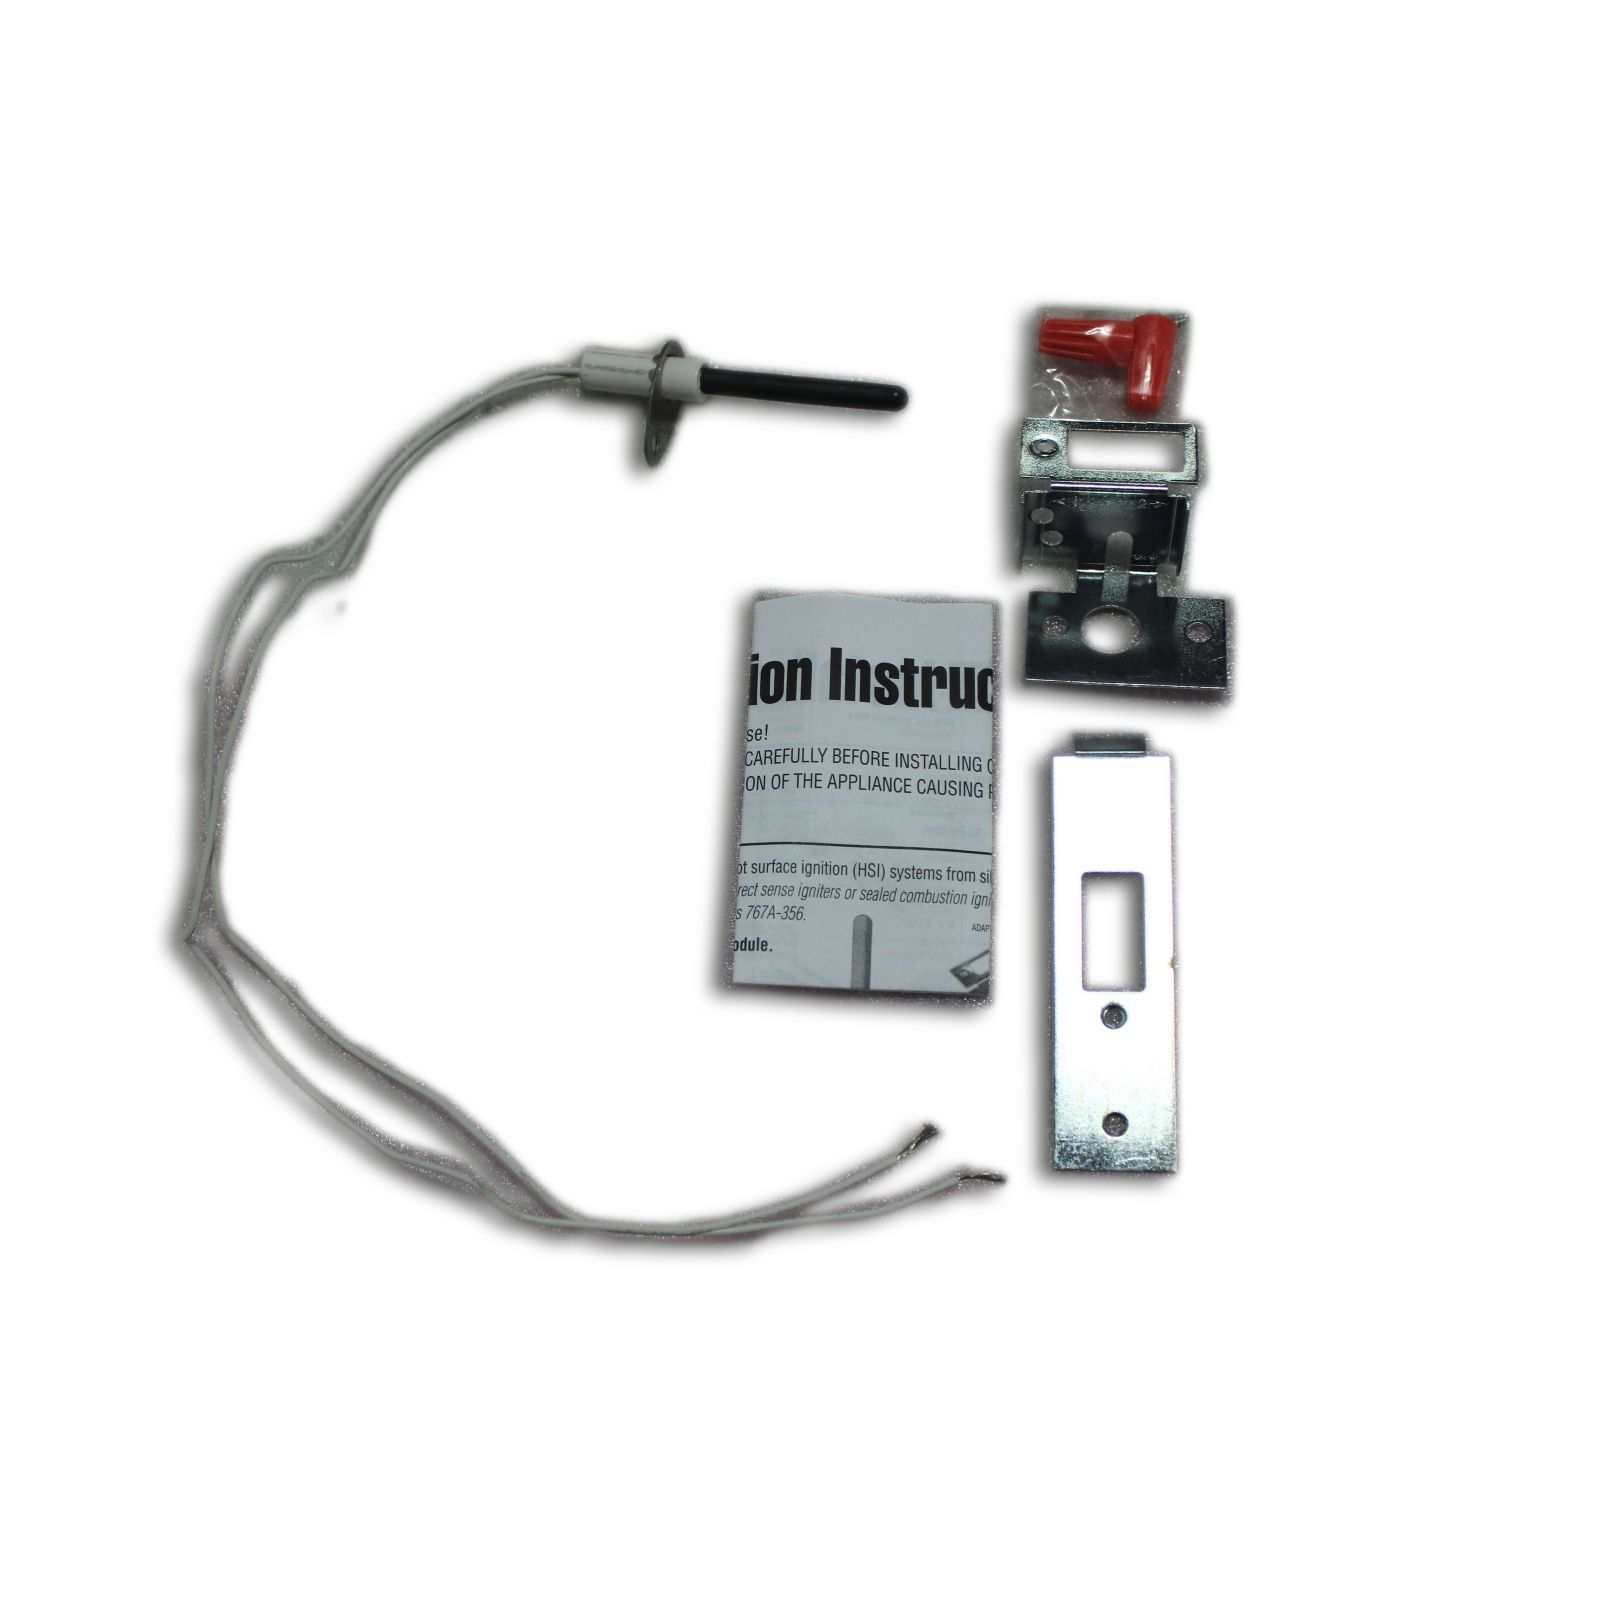 ICP 1175925 - Universal Hot Surface Ignitor Kit